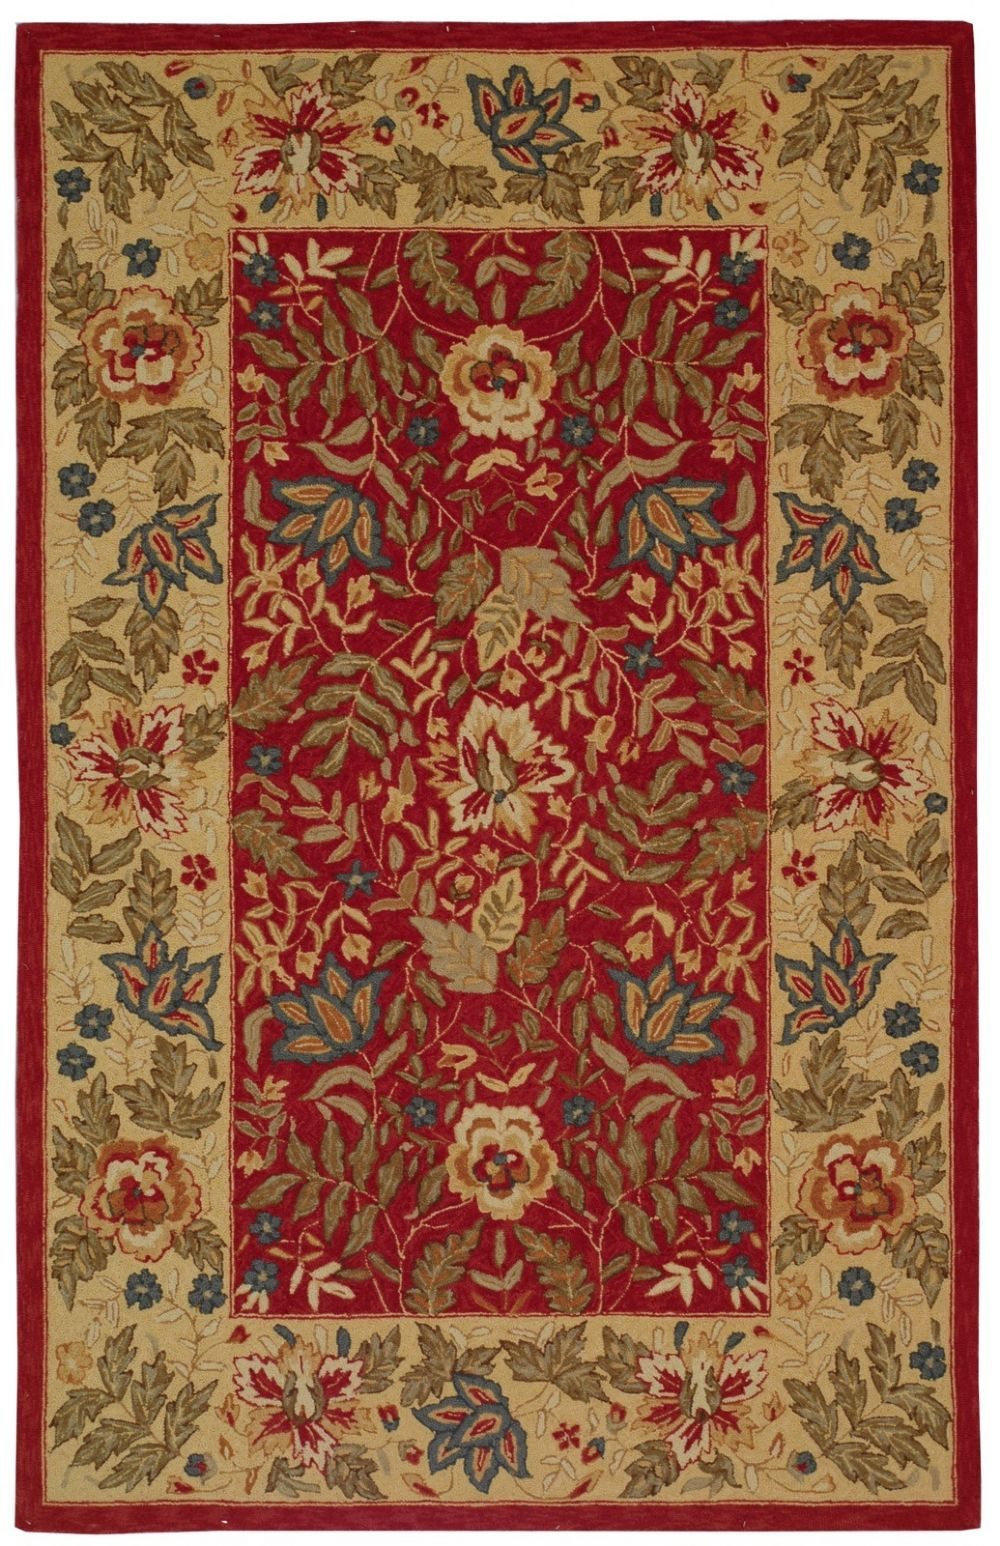 Safavieh Chelsea Country Floral Area Rug Collection. Live Chat Room Numbers. Cheap Living Room Decor. Living Room Theater Portland Showtimes. Small Nyc Living Room Ideas. Ashley Furniture Living Room Chairs. Mustard Color Paint Living Room. Wall Shelving Units For Living Room. Formal Living Room Furniture For Sale